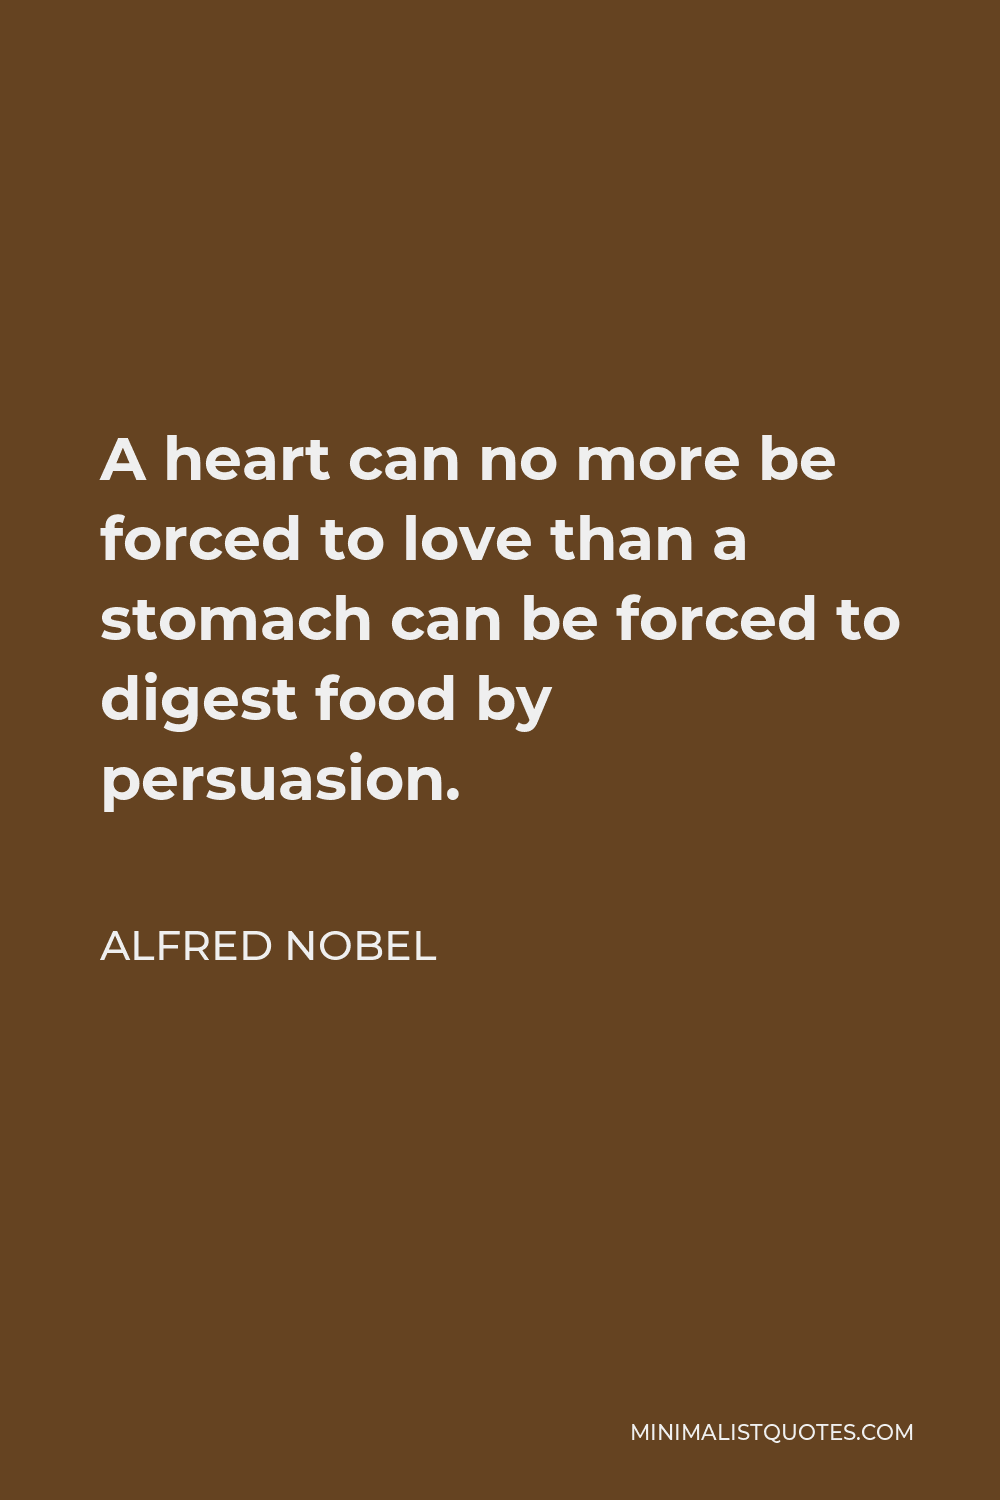 Alfred Nobel Quote - A heart can no more be forced to love than a stomach can be forced to digest food by persuasion.